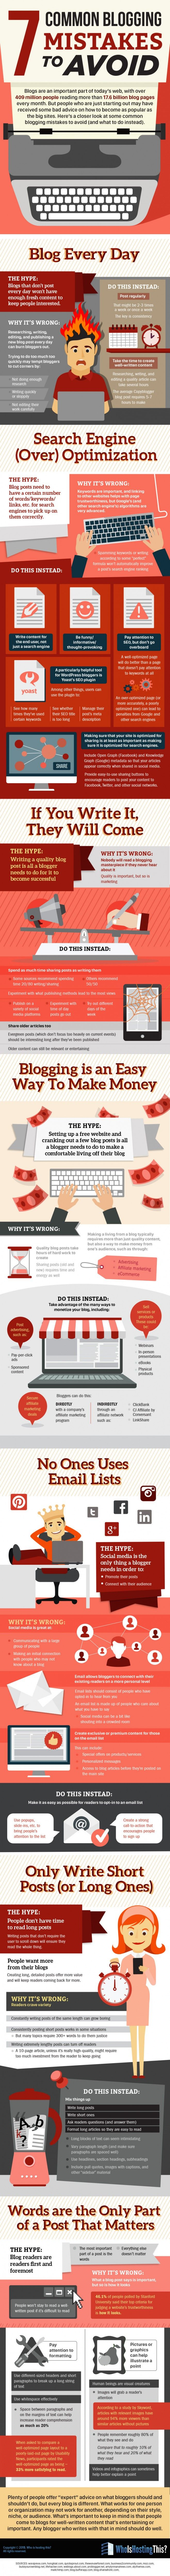 7 Common Blogging Mistakes To Avoid [Infographic] | Daily Infographic